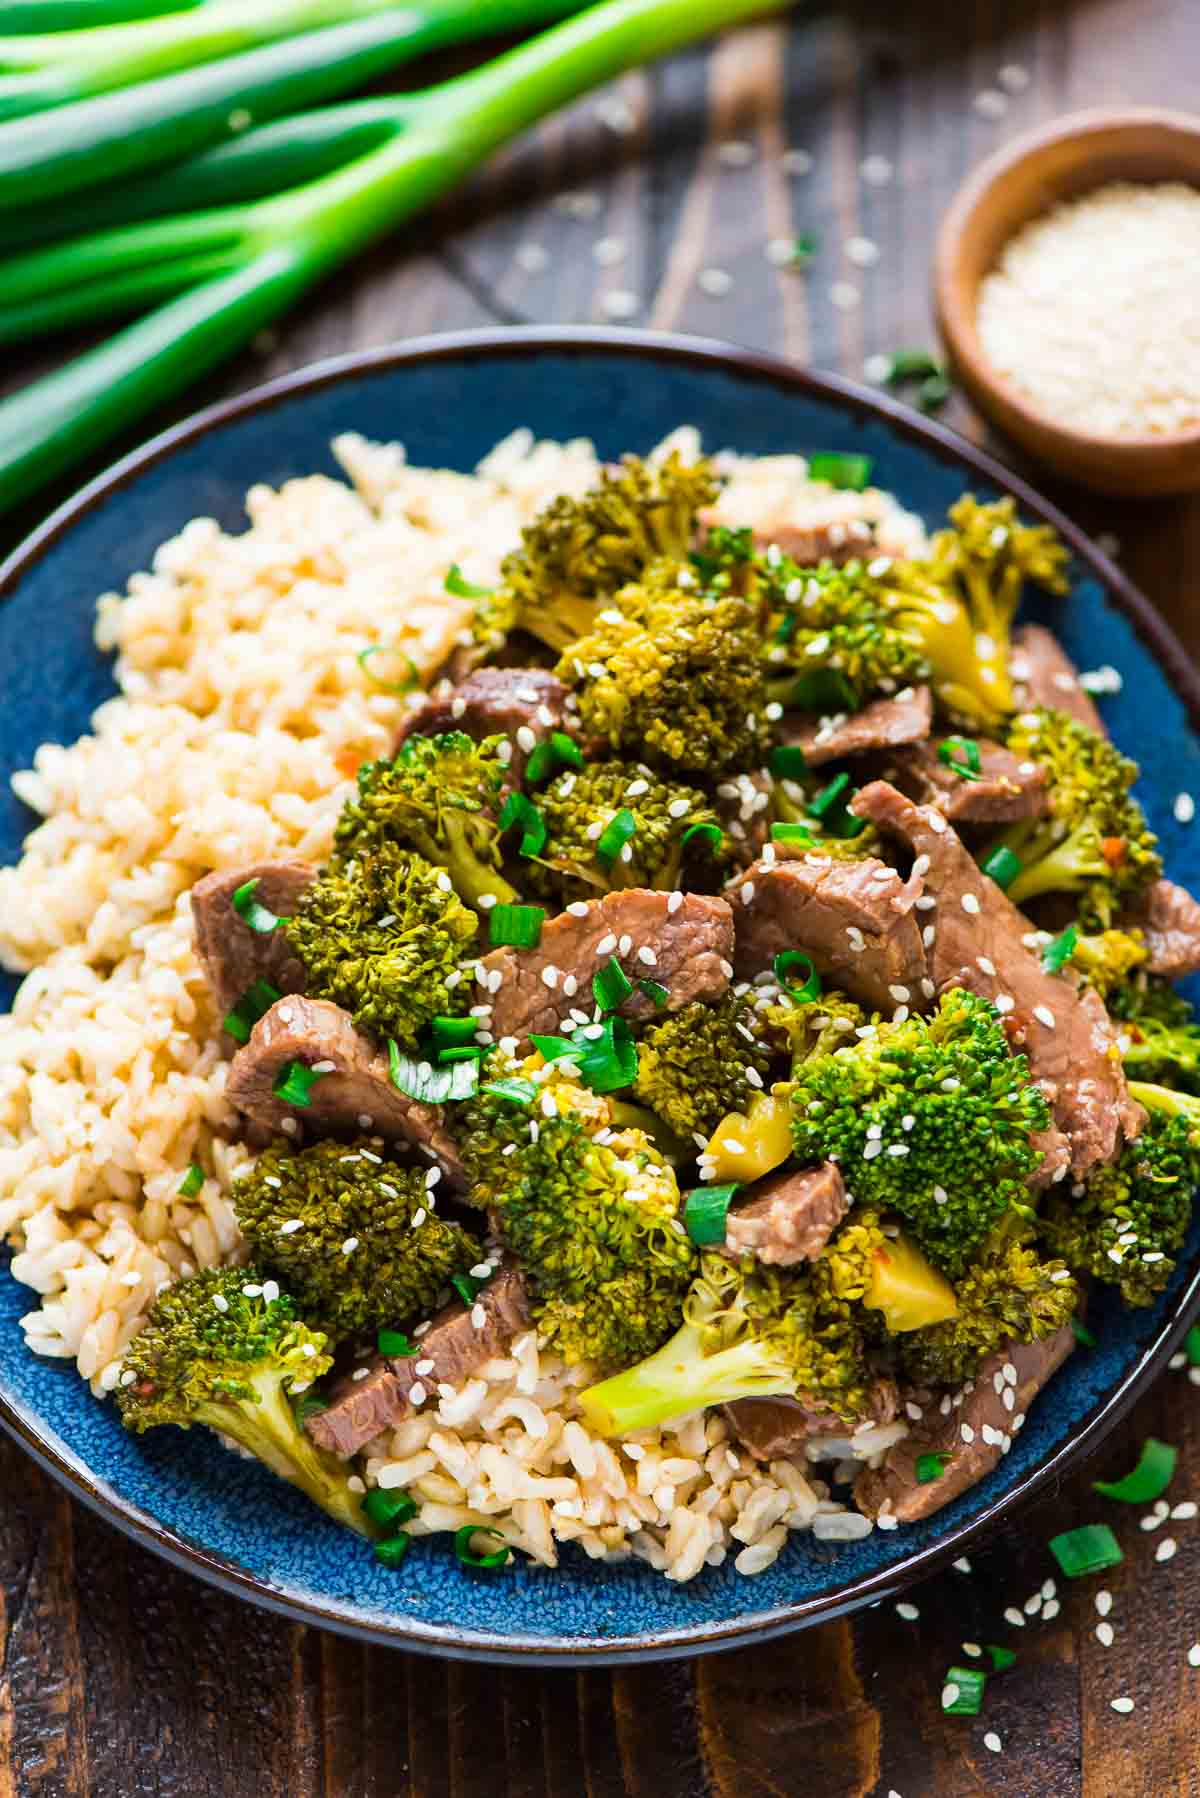 30 Days of Healthy Slow Cooker Dinner Recipes - Slow Cooker Beef and Broccoli via Well Plated | https://www.roseclearfield.com